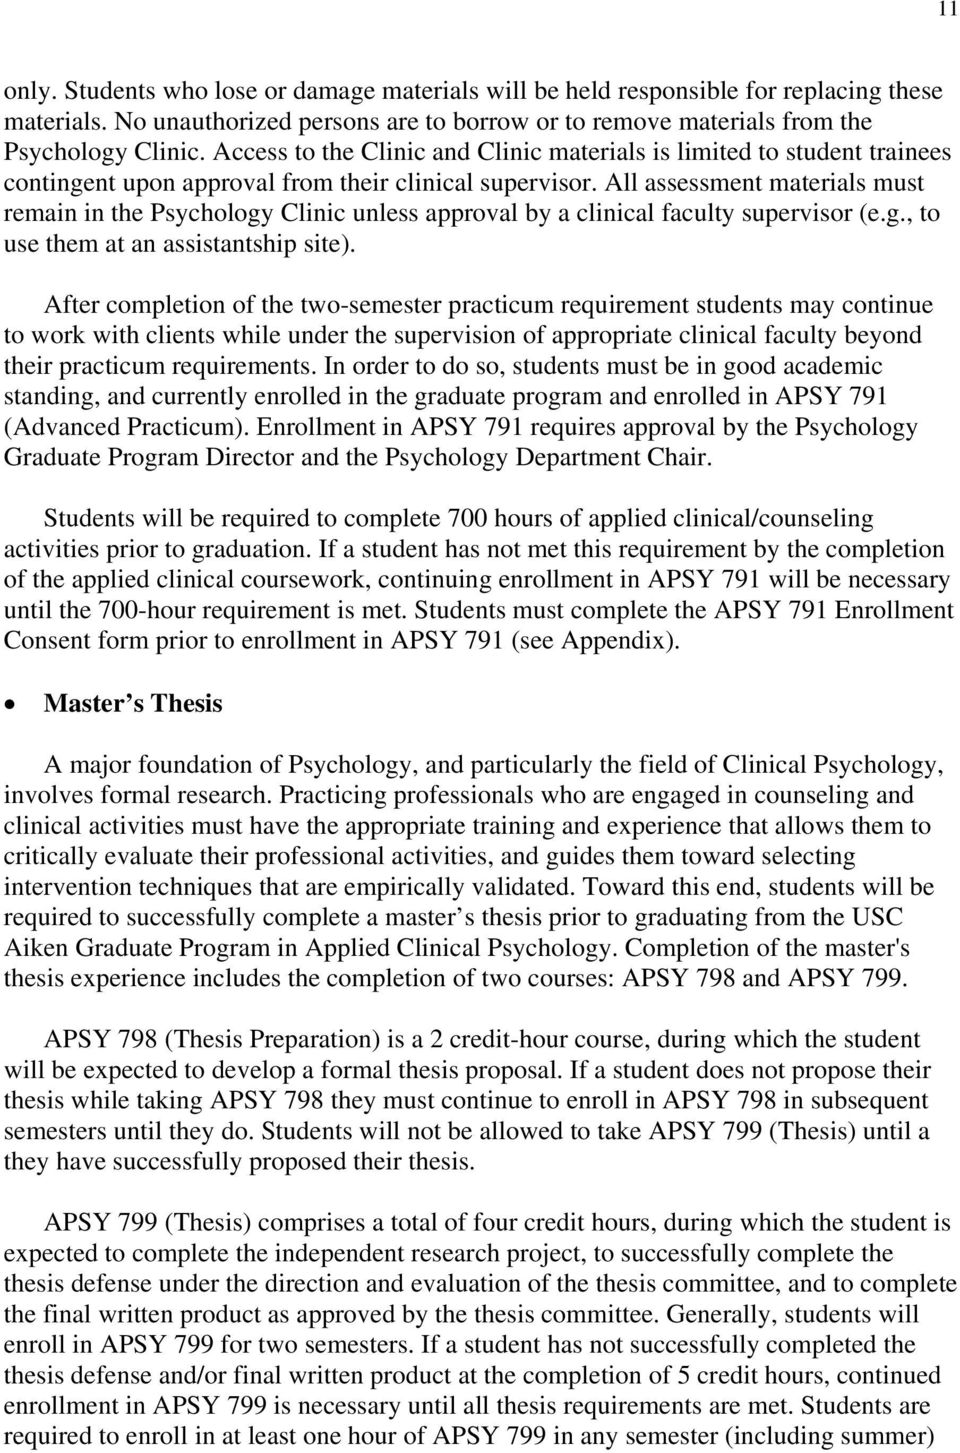 All assessment materials must remain in the Psychology Clinic unless approval by a clinical faculty supervisor (e.g., to use them at an assistantship site).